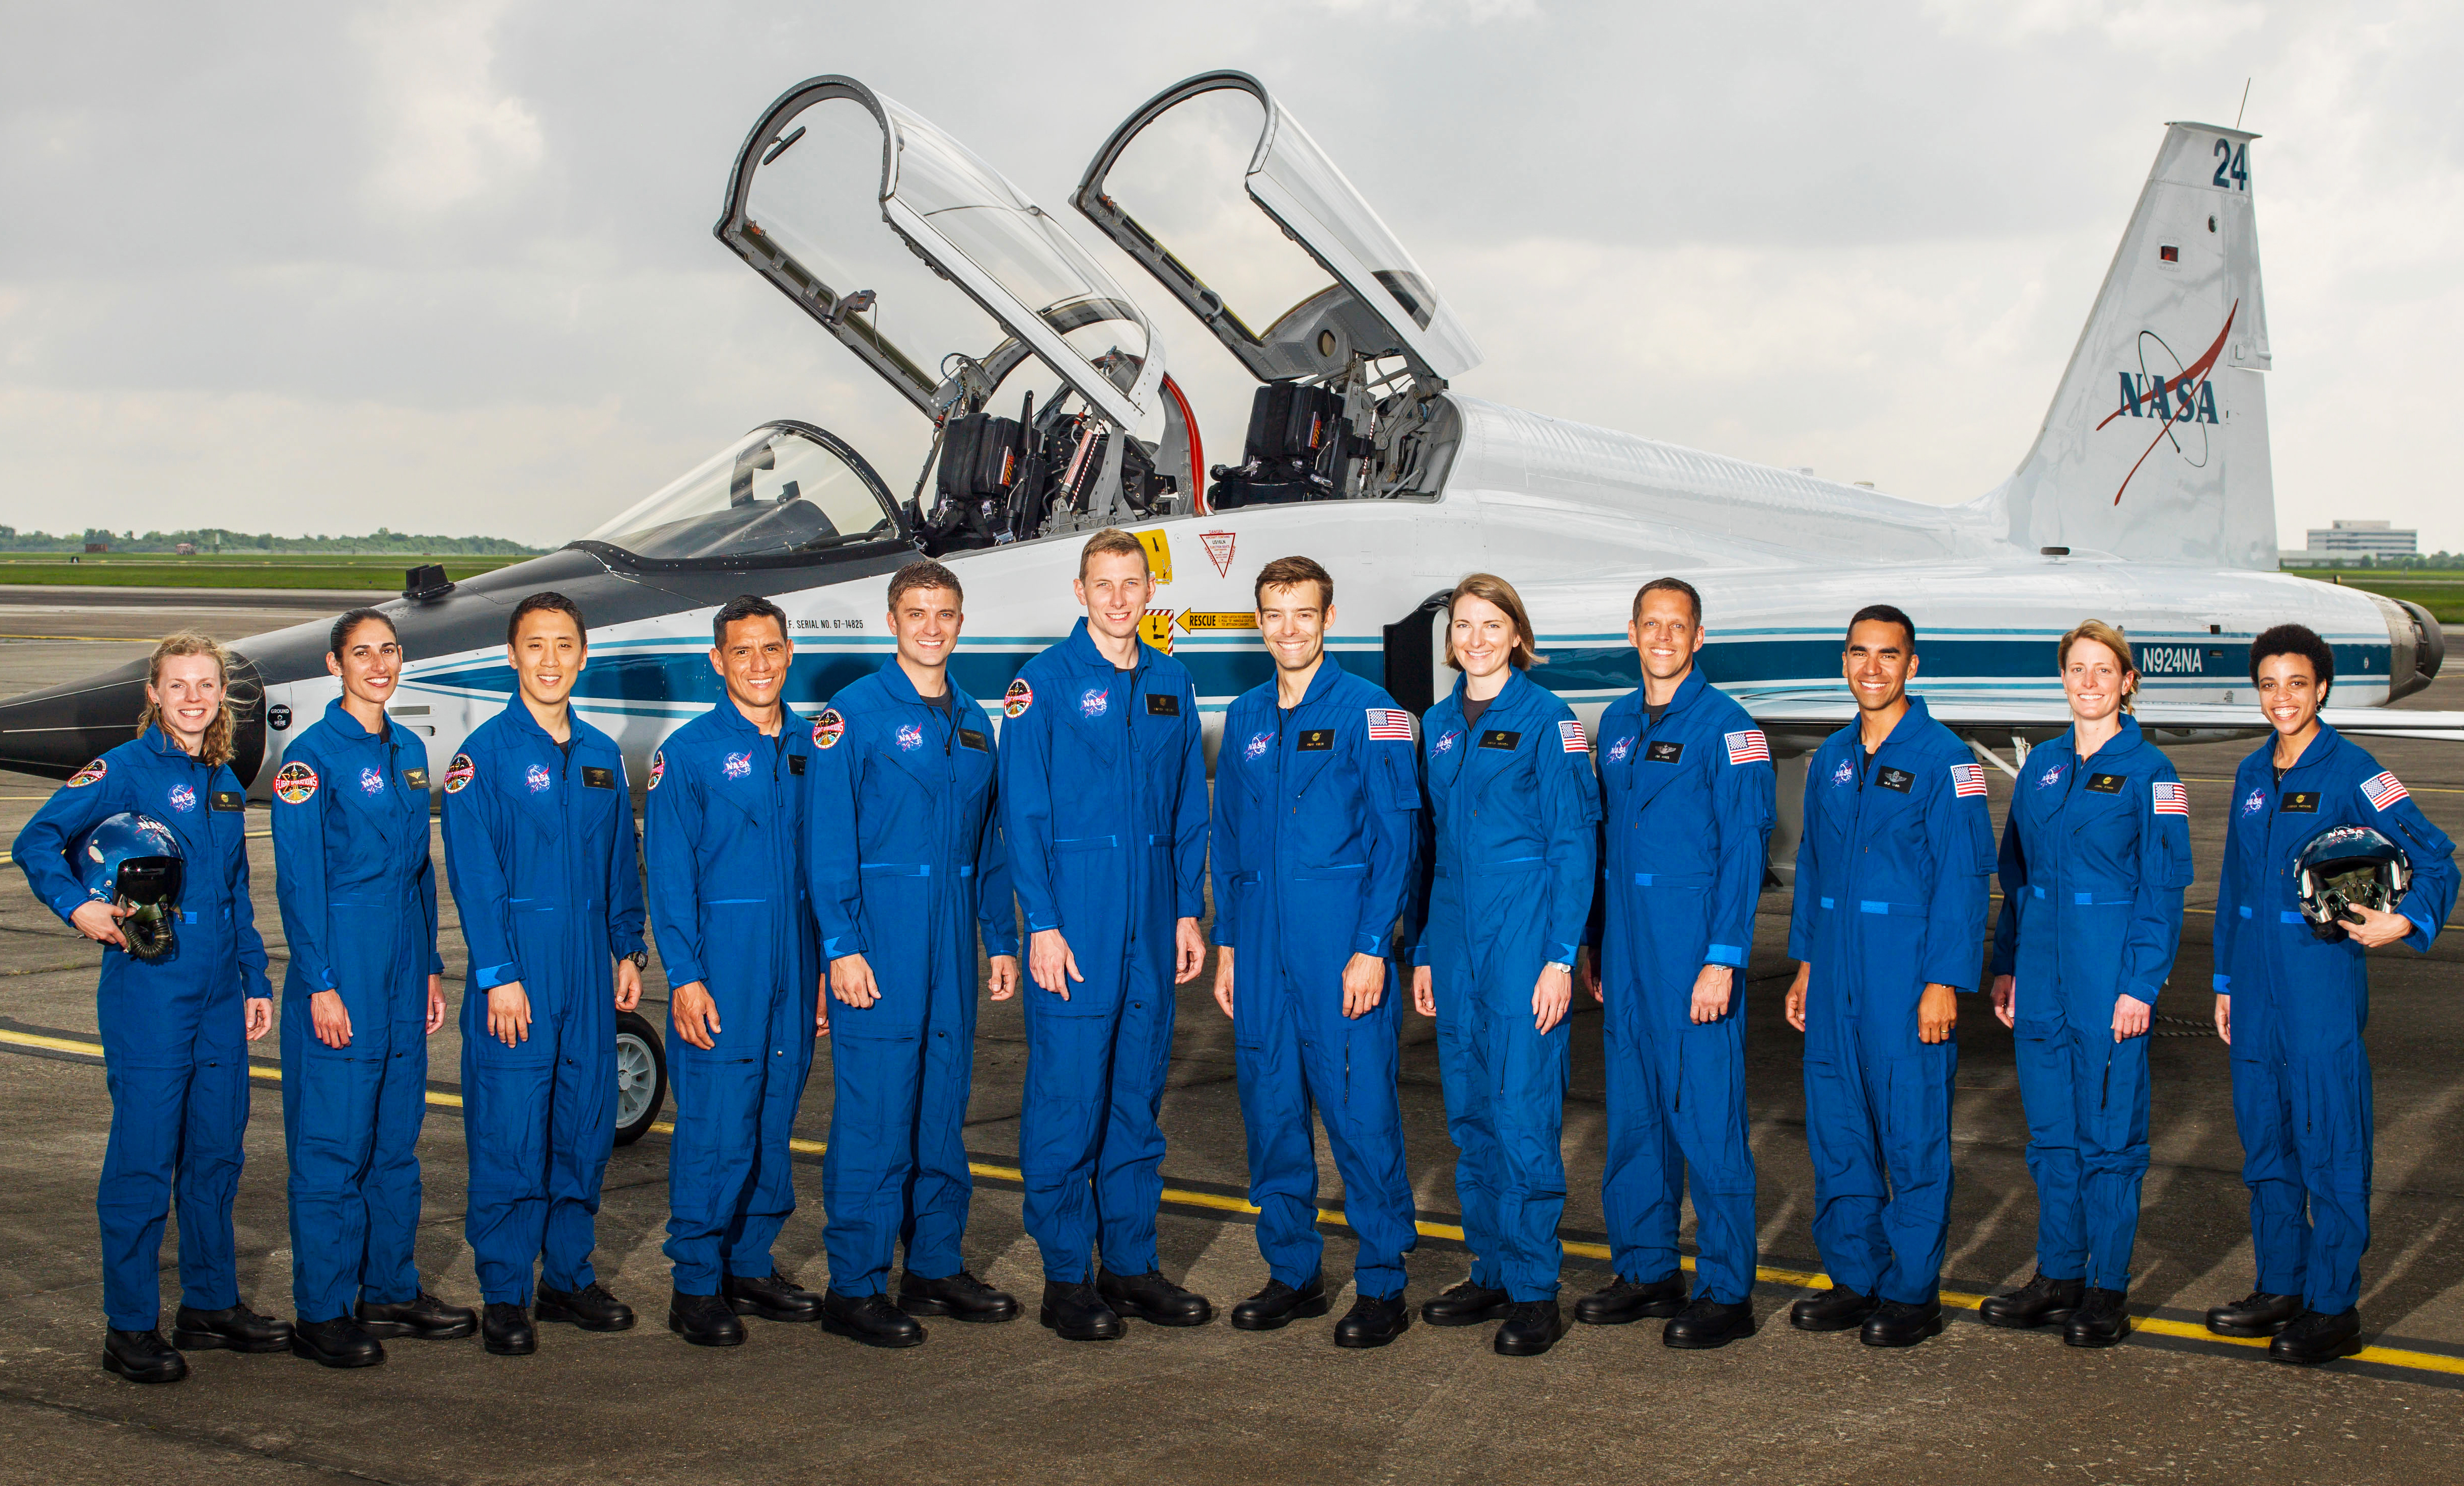 new nasa astronauts - HD 1200×793